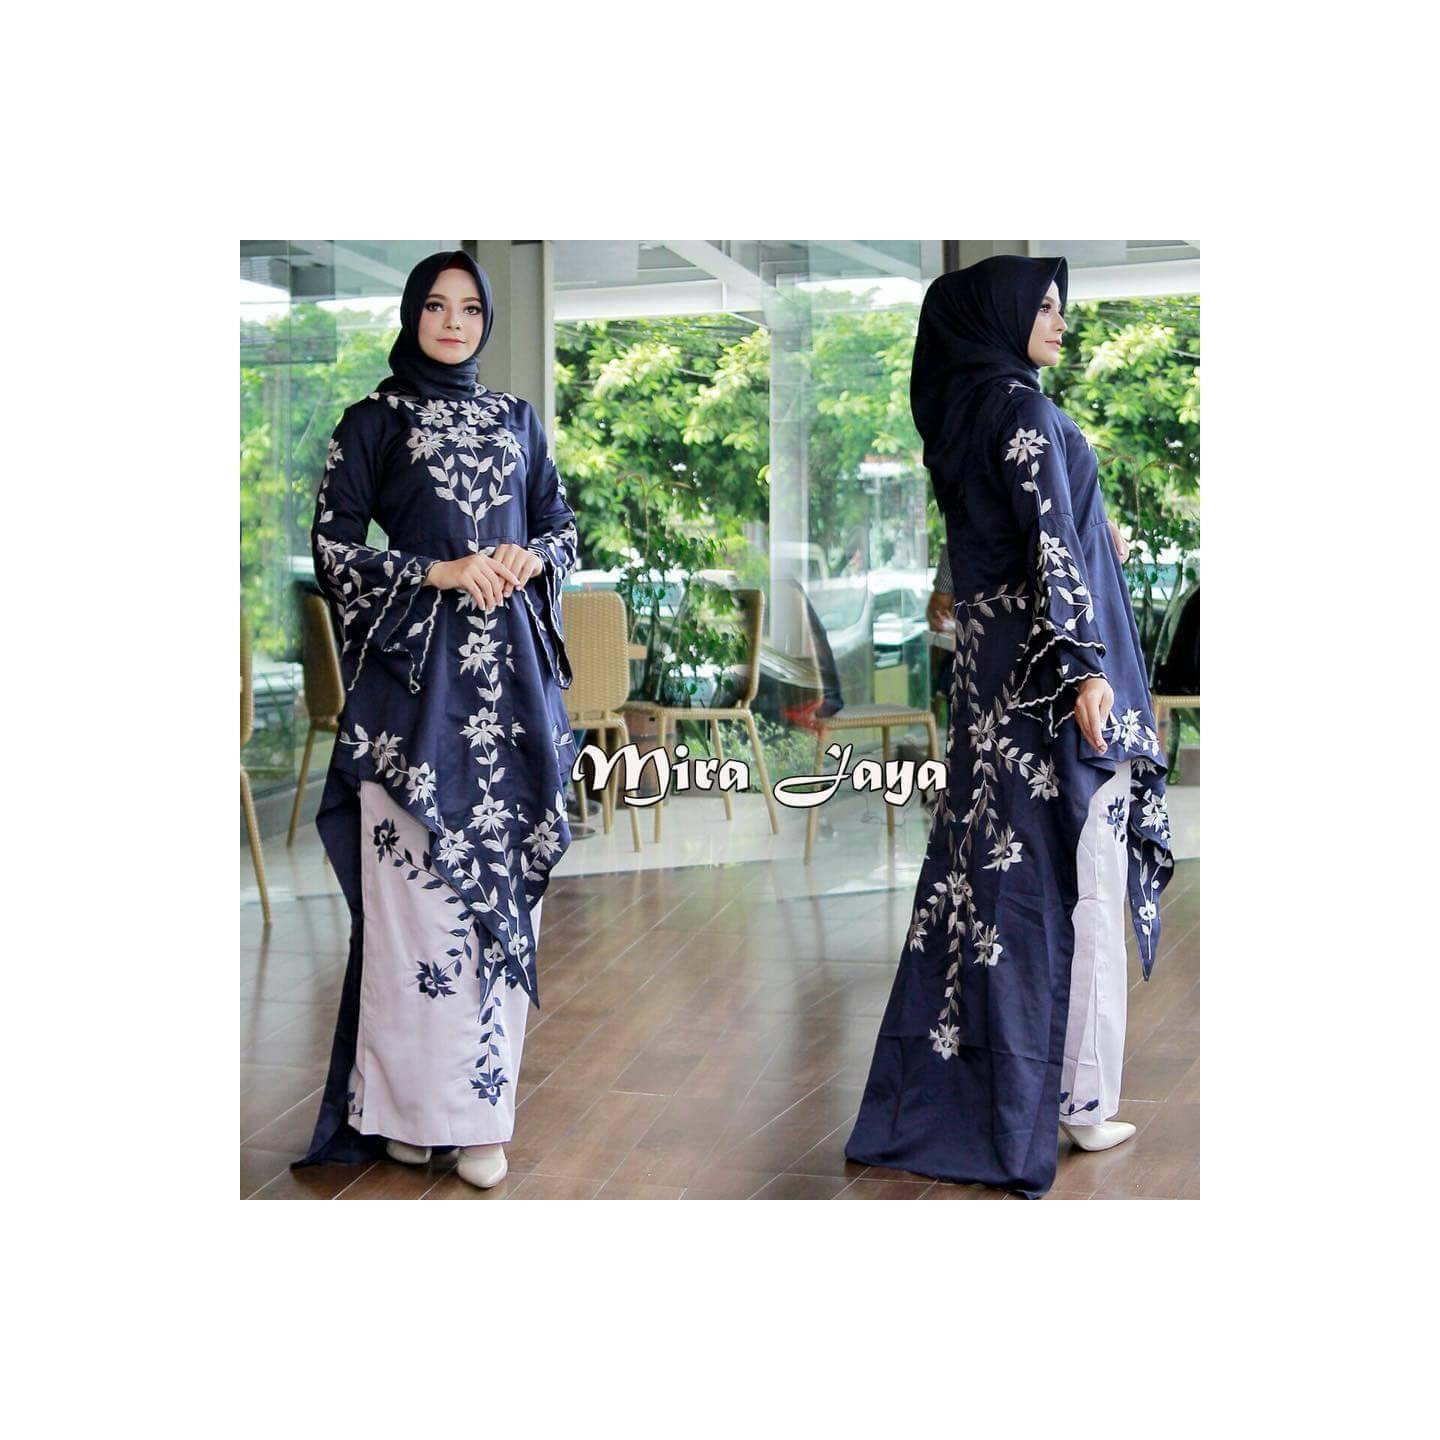 SET. ABAYA ROK MIRA JAYA BALOTELLY NAVY - Navy, XXL